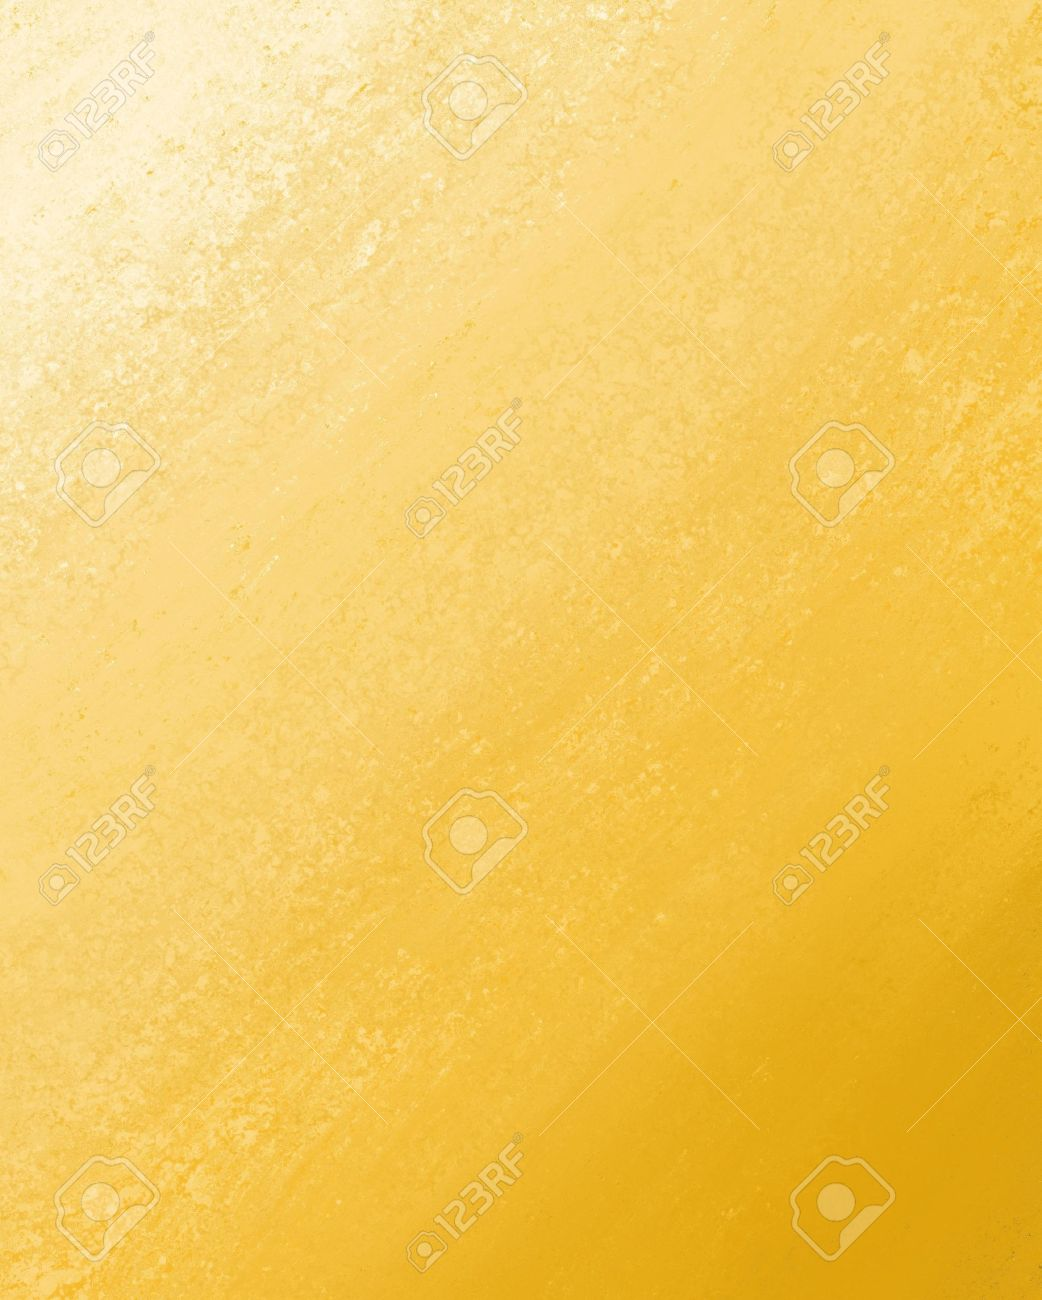 Gold Gradient Background : gradient, background, Abstract, Yellow, Background, Gradient, Colors, Vintage.., Stock, Photo,, Picture, Royalty, Image., Image, 15308319.